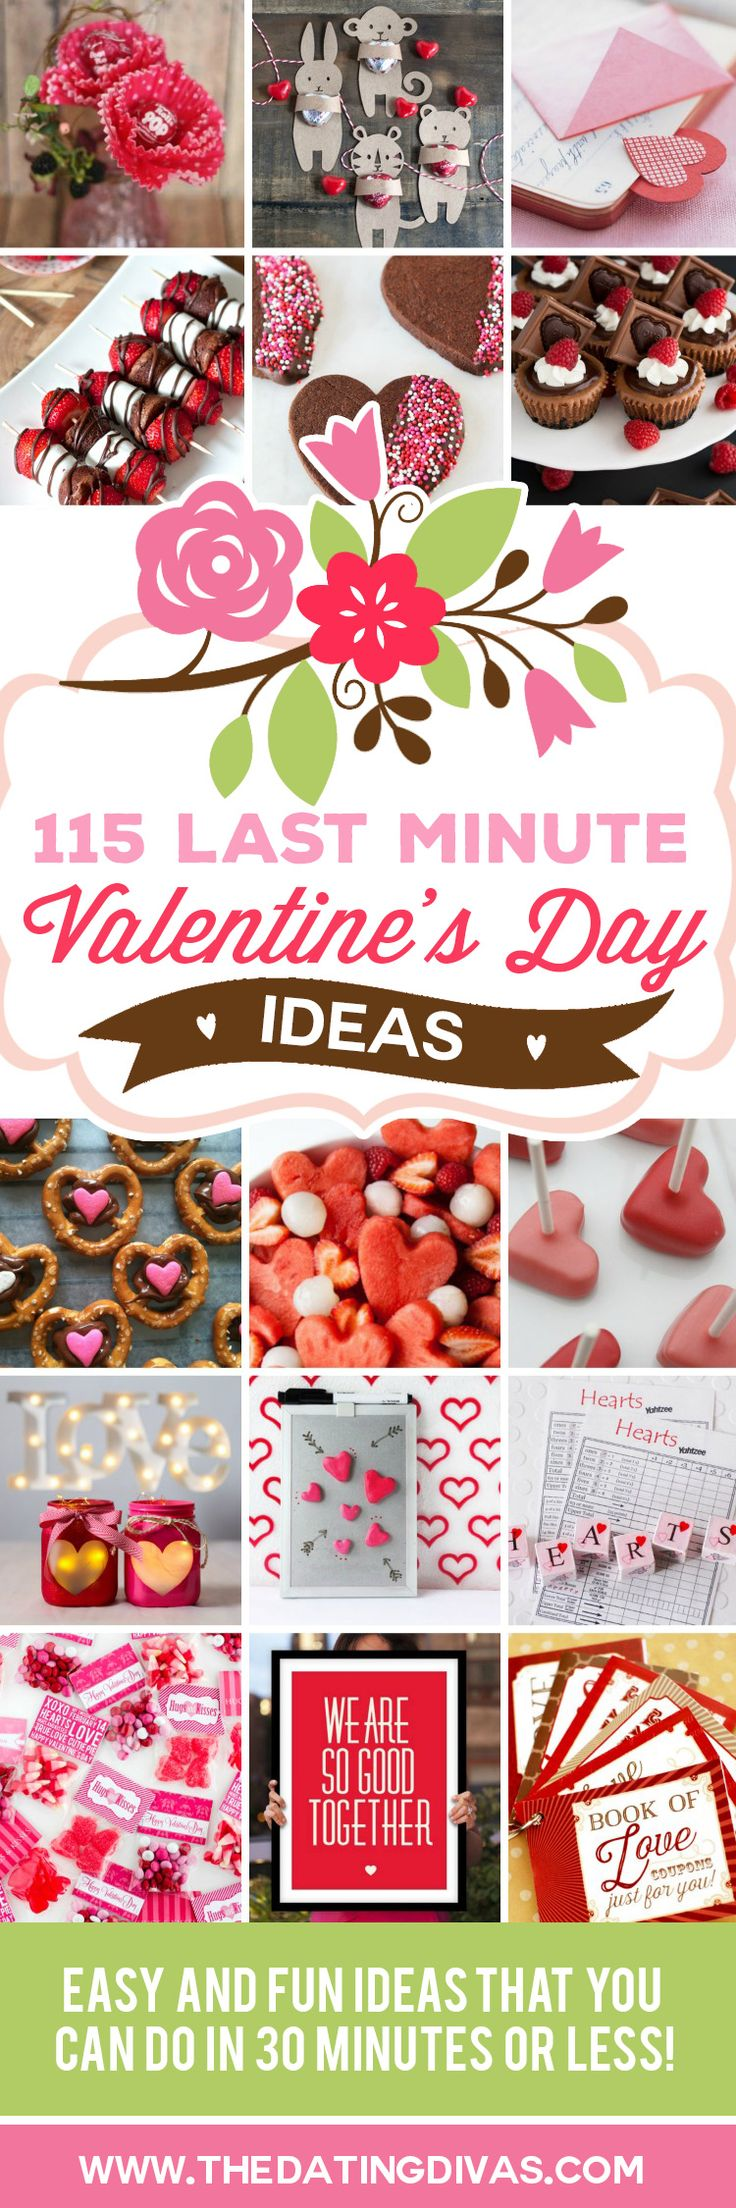 So much inspiration! These ideas are all so quick and easy. This Valentine's Day is going to rock!! www.TheDatingDivas.com